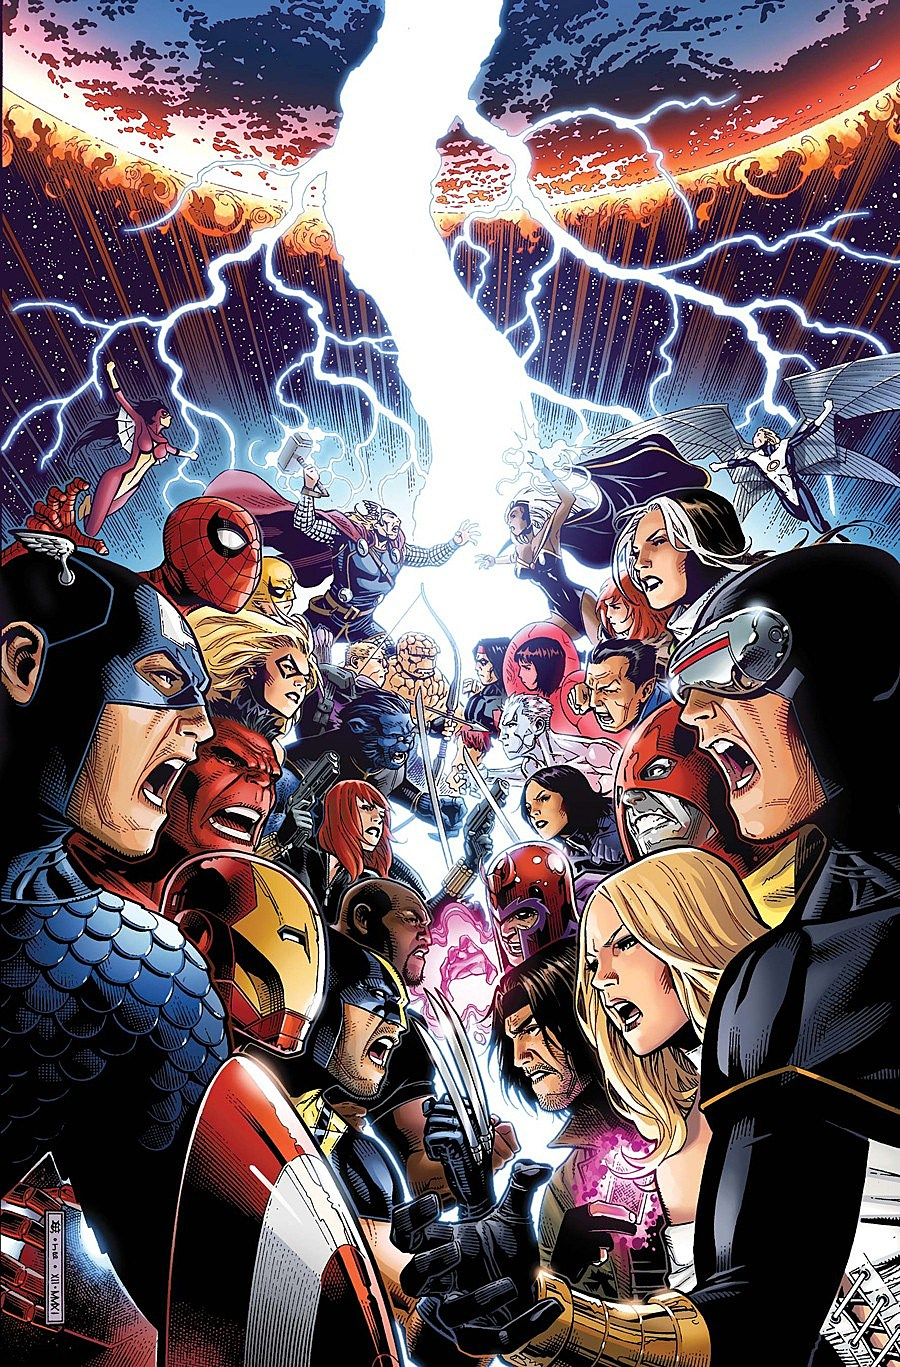 John persons comics for sale - Brian Michael Bendis W John Romita Jr A Cover By Jim Cheung Variant Covers By Ryan Stegman John Romita Jr Blank Variant Also Available